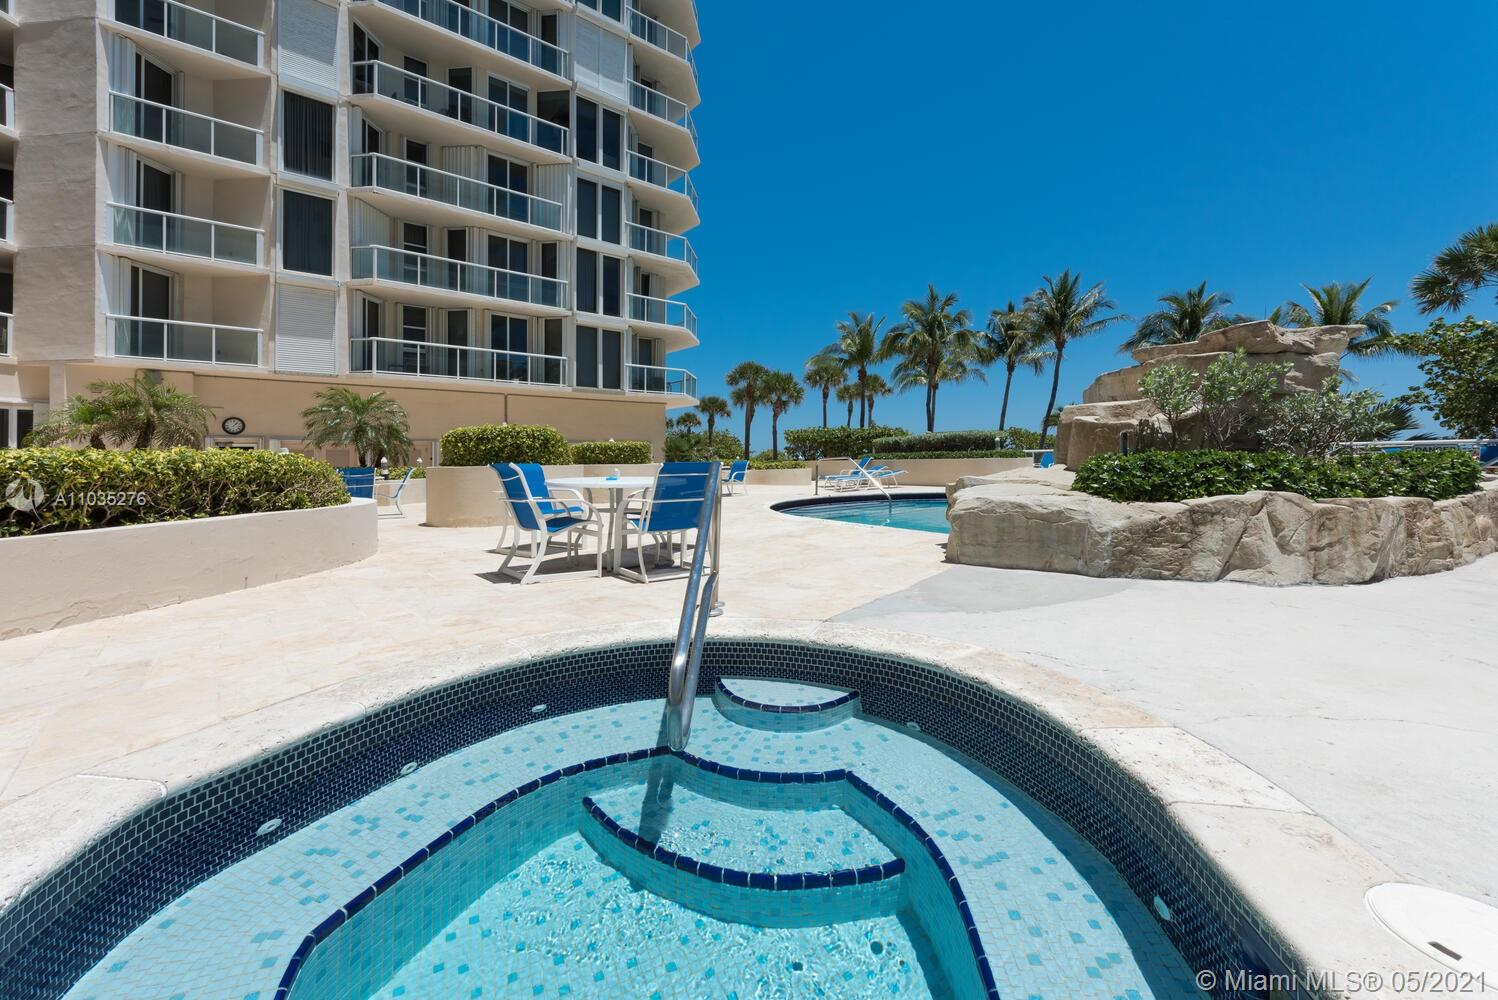 Photo of 8925 Collins Ave #4F, Surfside, Florida, 33154 - Media room, could be used as a guest bedroom or den.